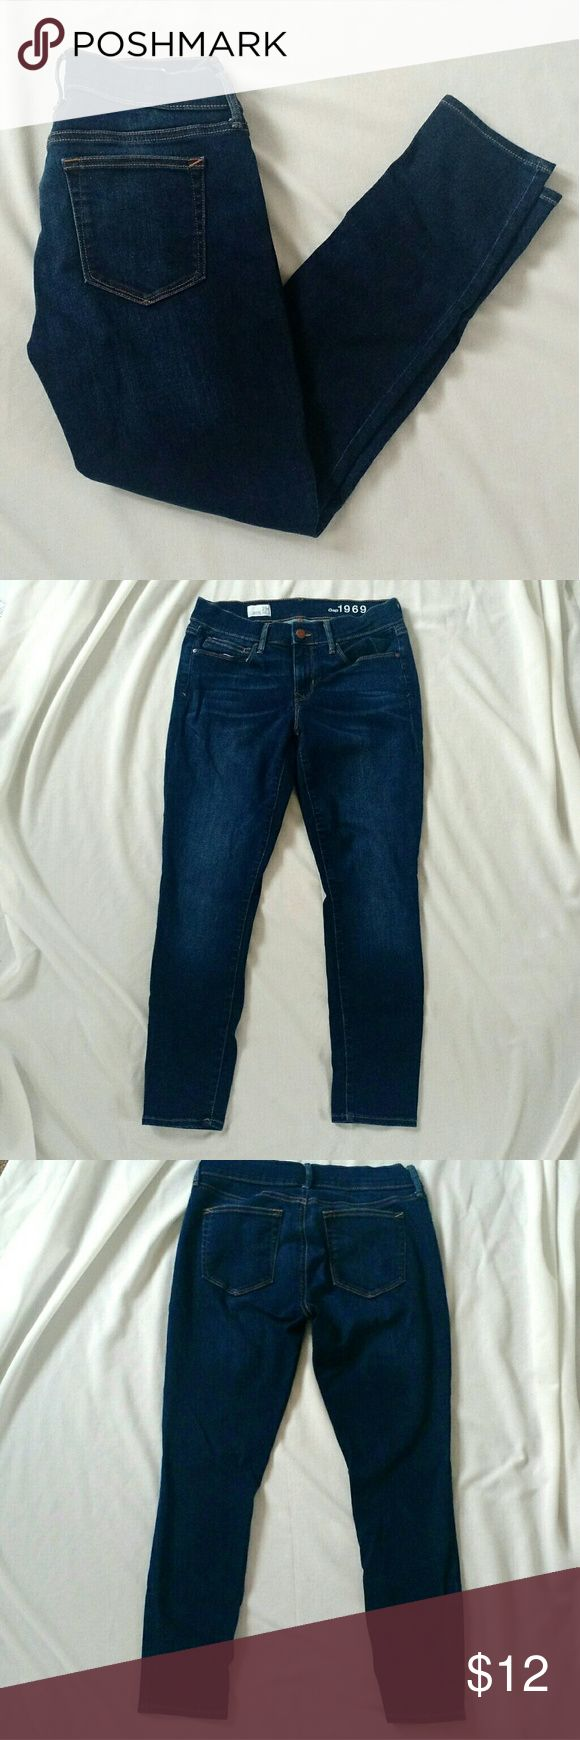 """GAP Sz 29 P Legging Jean ~ Jeggings Skinny Jeans GAP 1969 Legging Jeans/ Jeggings/ Skinny Jeans Size 29P (Petite) RN 54023 Stretch ~ 98% Cotton & 2% Spandex Santa Cruz Blue Measurements- Rise: 8"""" Inseam: 27"""" Waist laid flat: 14.5"""" Adorable rolled up as capris! From a smoke-free and pet-free home. GAP Jeans Skinny"""